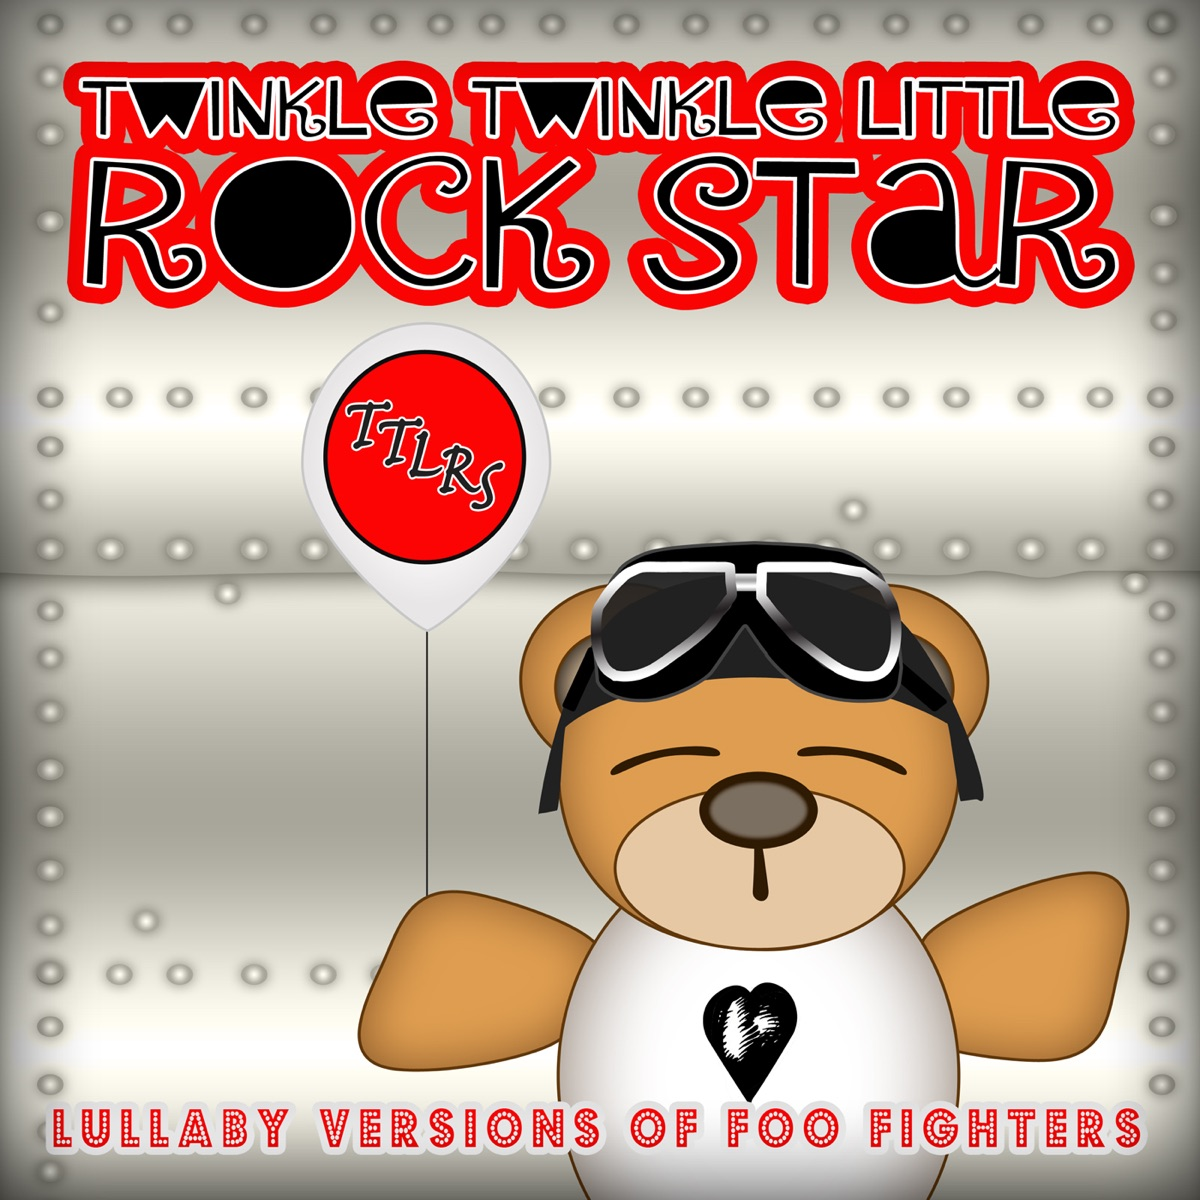 Lullaby Versions of Foo Fighters Twinkle Twinkle Little Rock Star CD cover